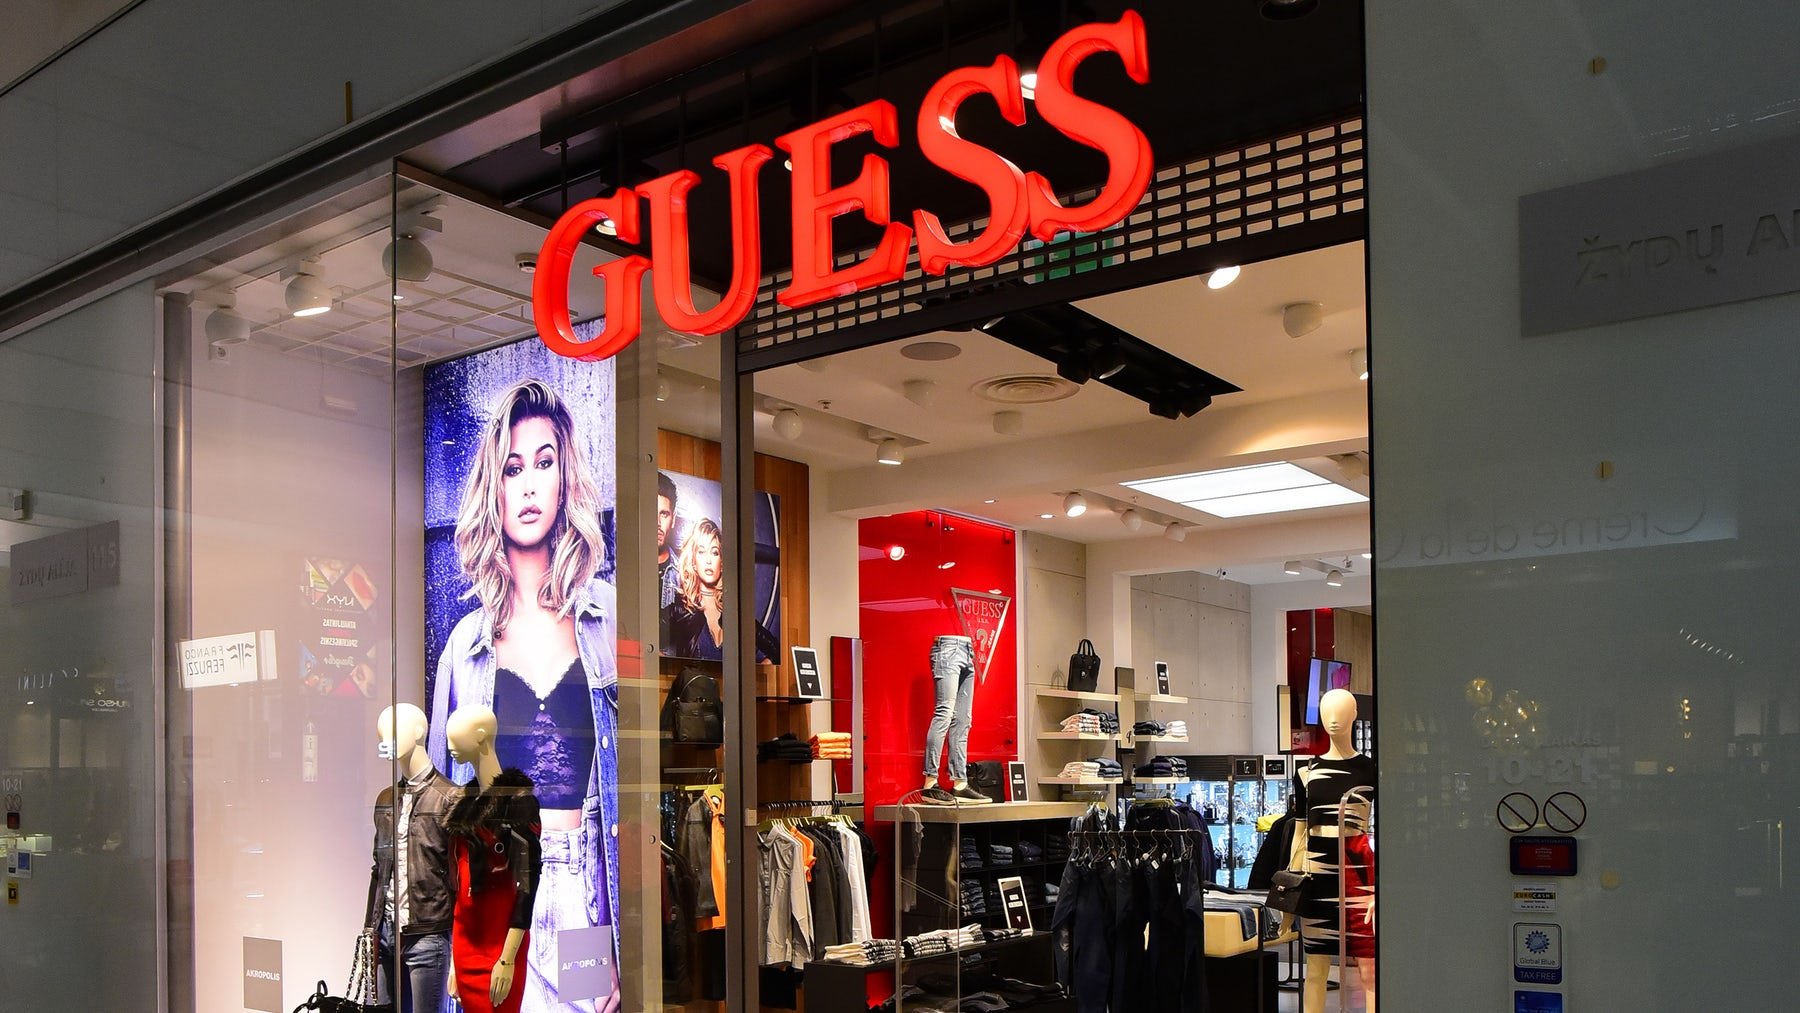 Guess store | Source: Shutterstock